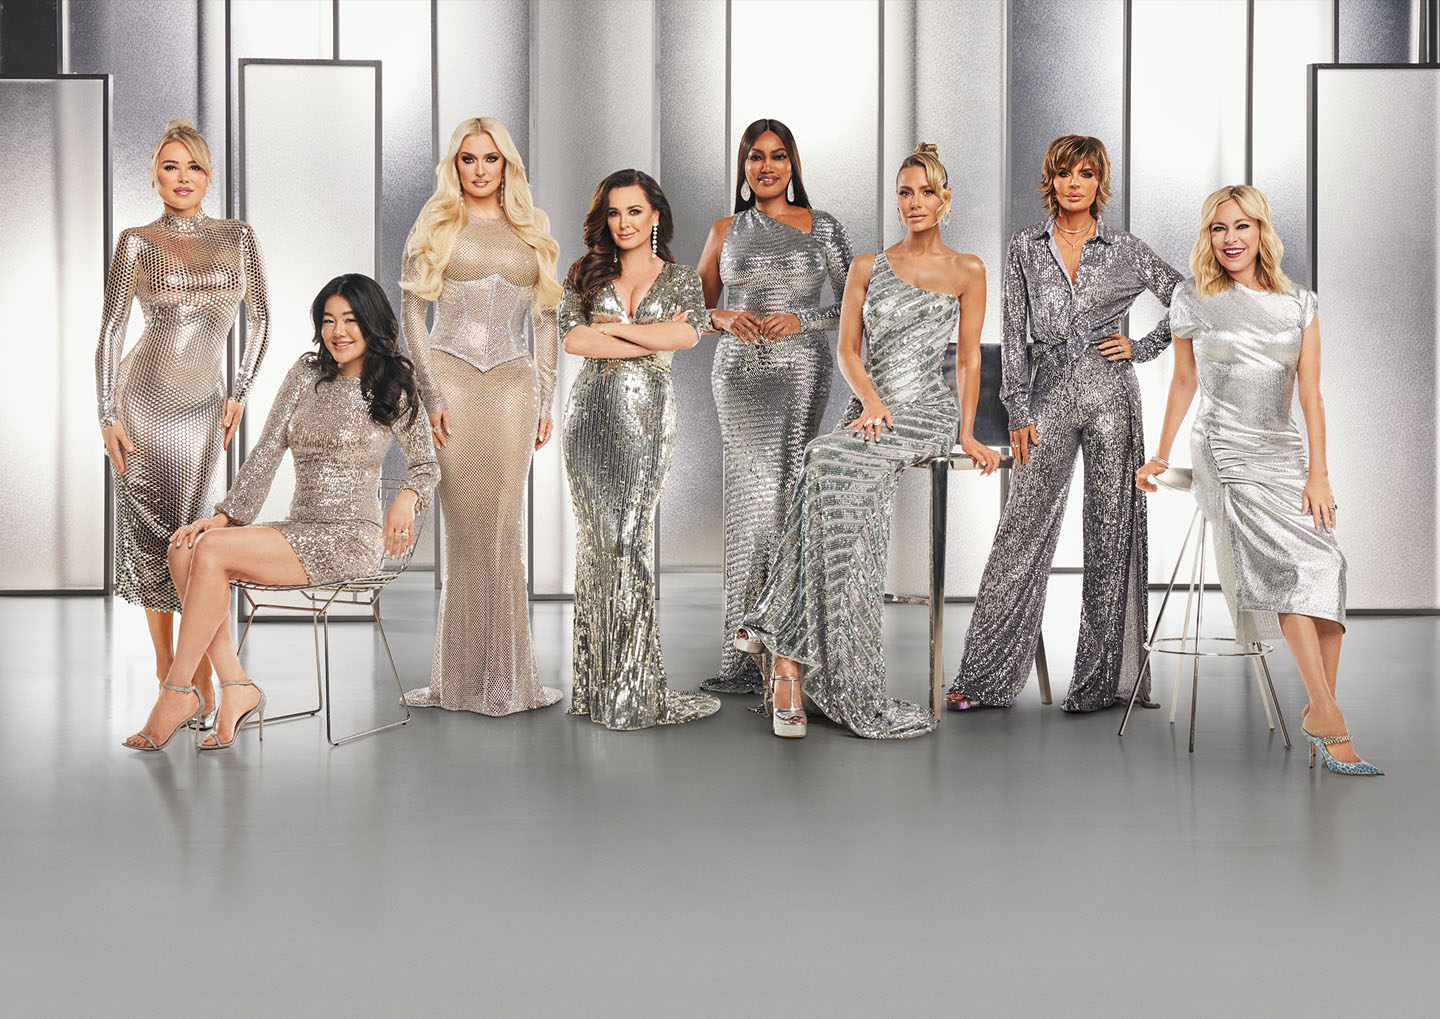 The Real Housewives of Beverly Hills header image